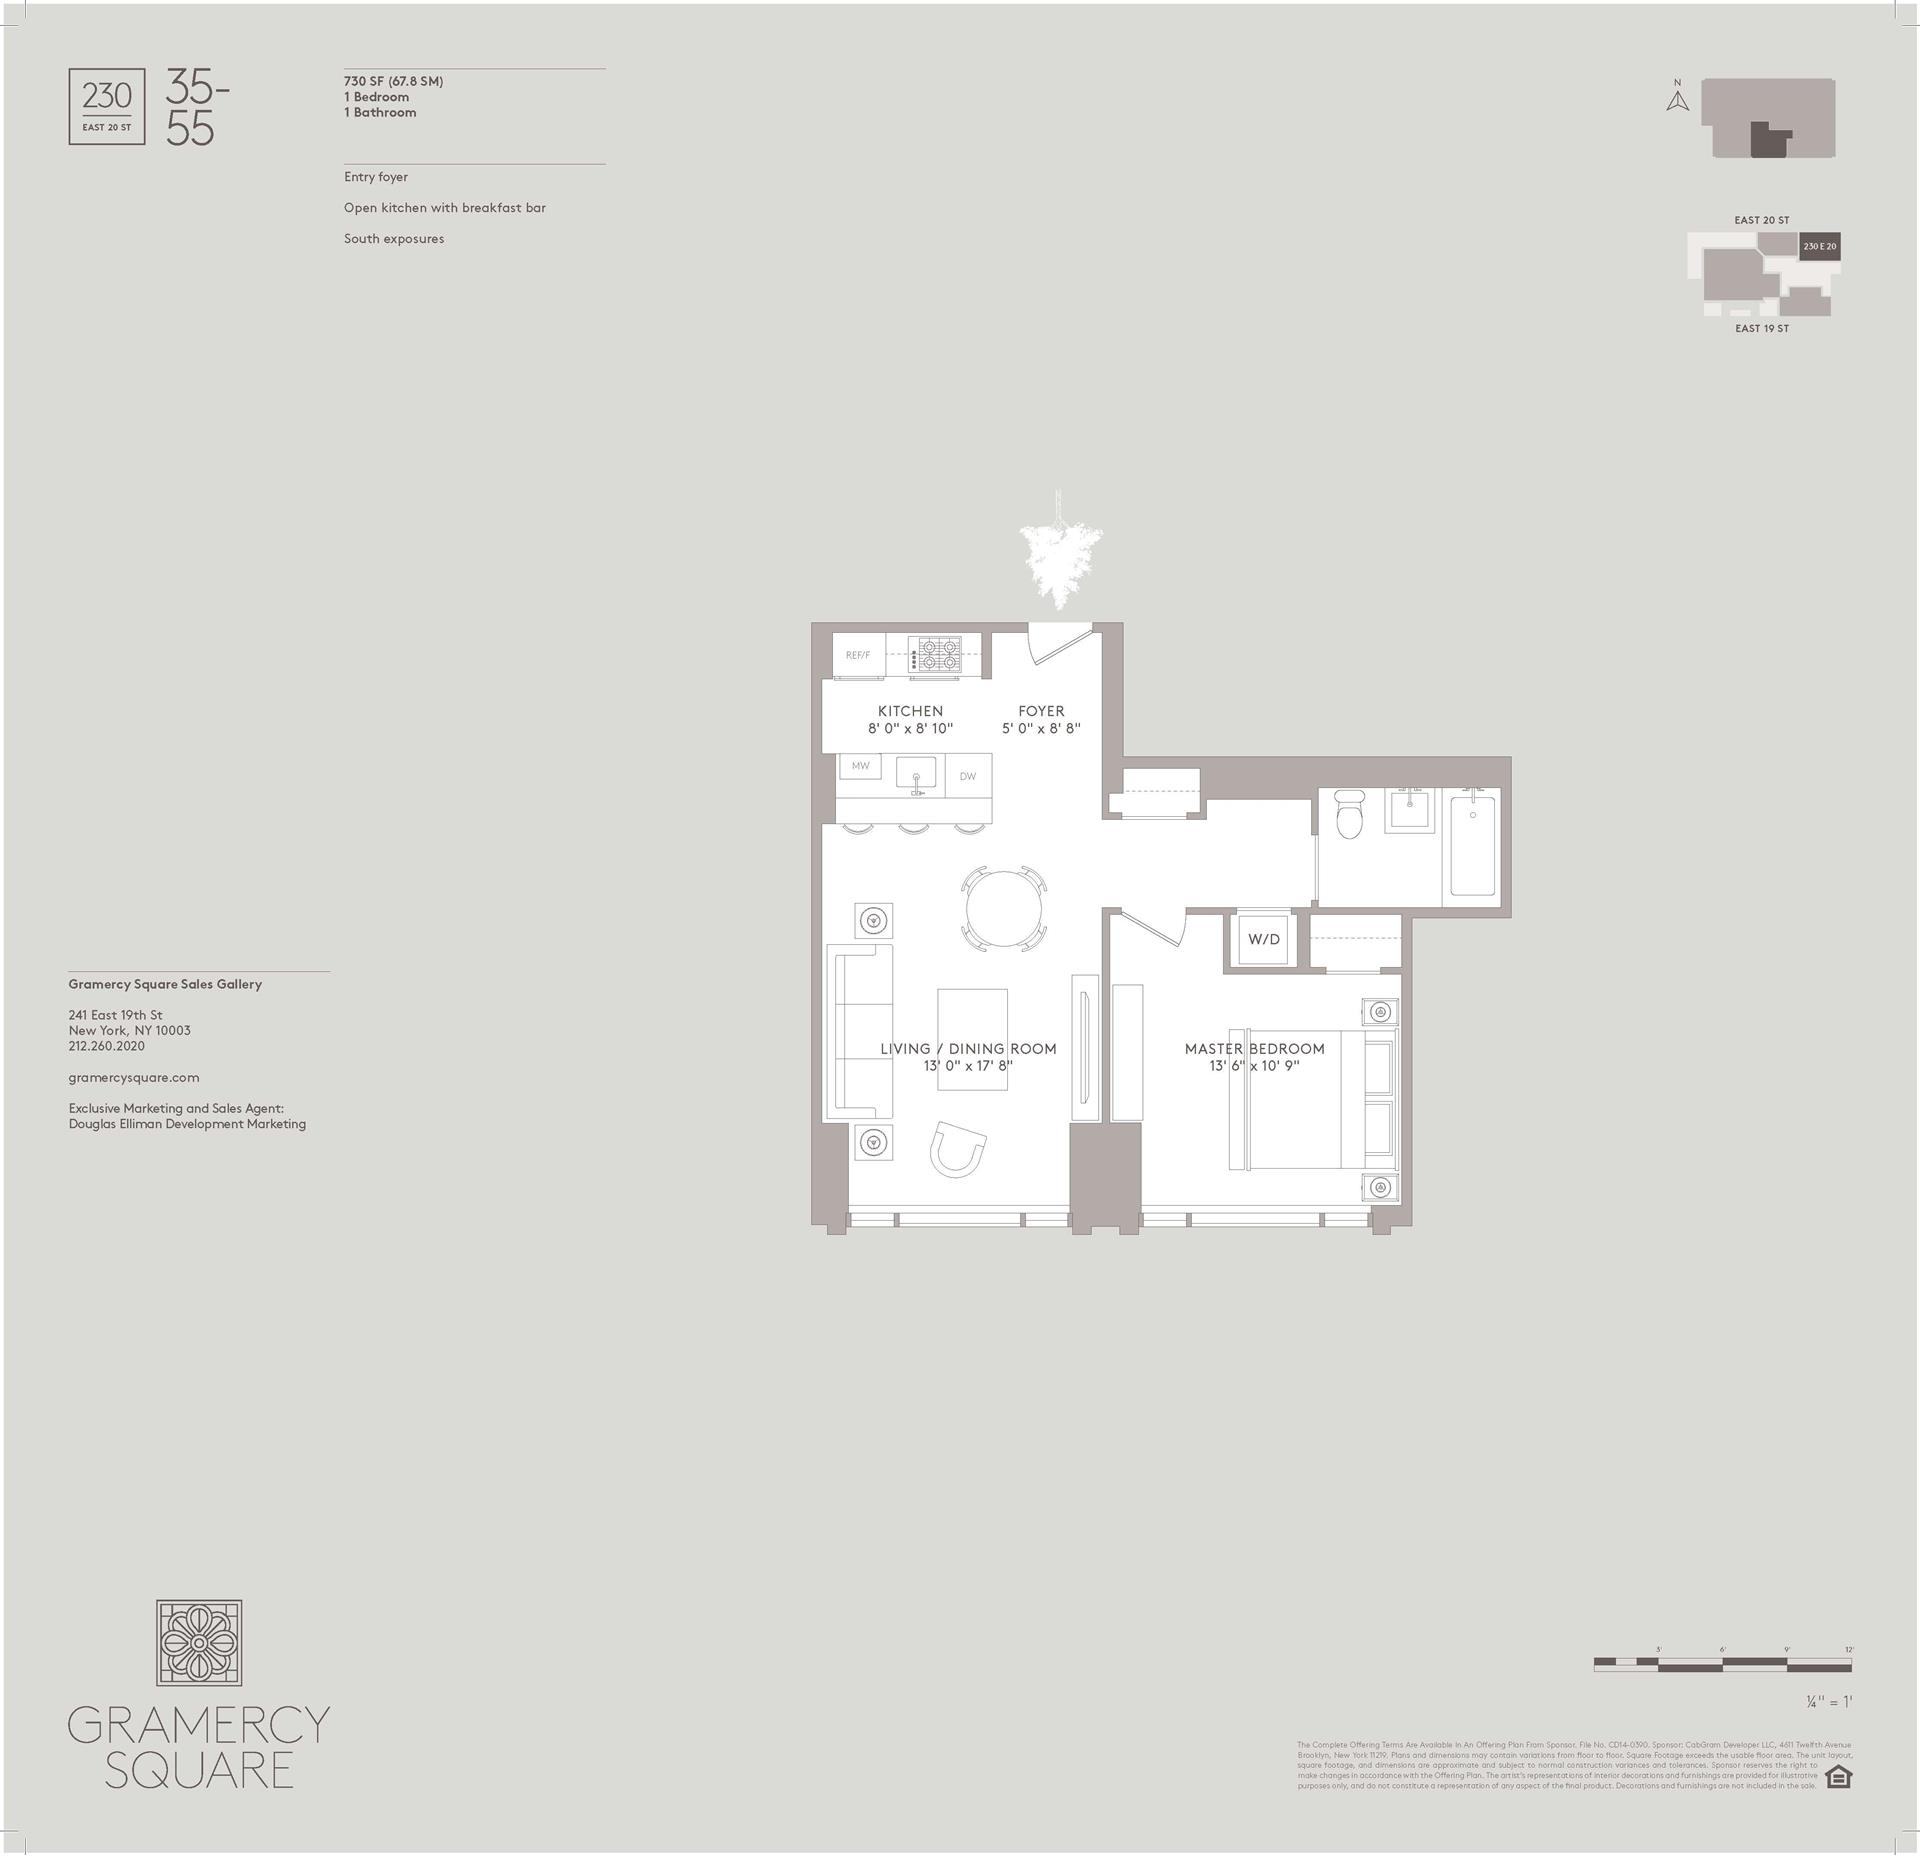 Floor plan of Gramercy Square, 230 East 20th St, 45 - Gramercy - Union Square, New York